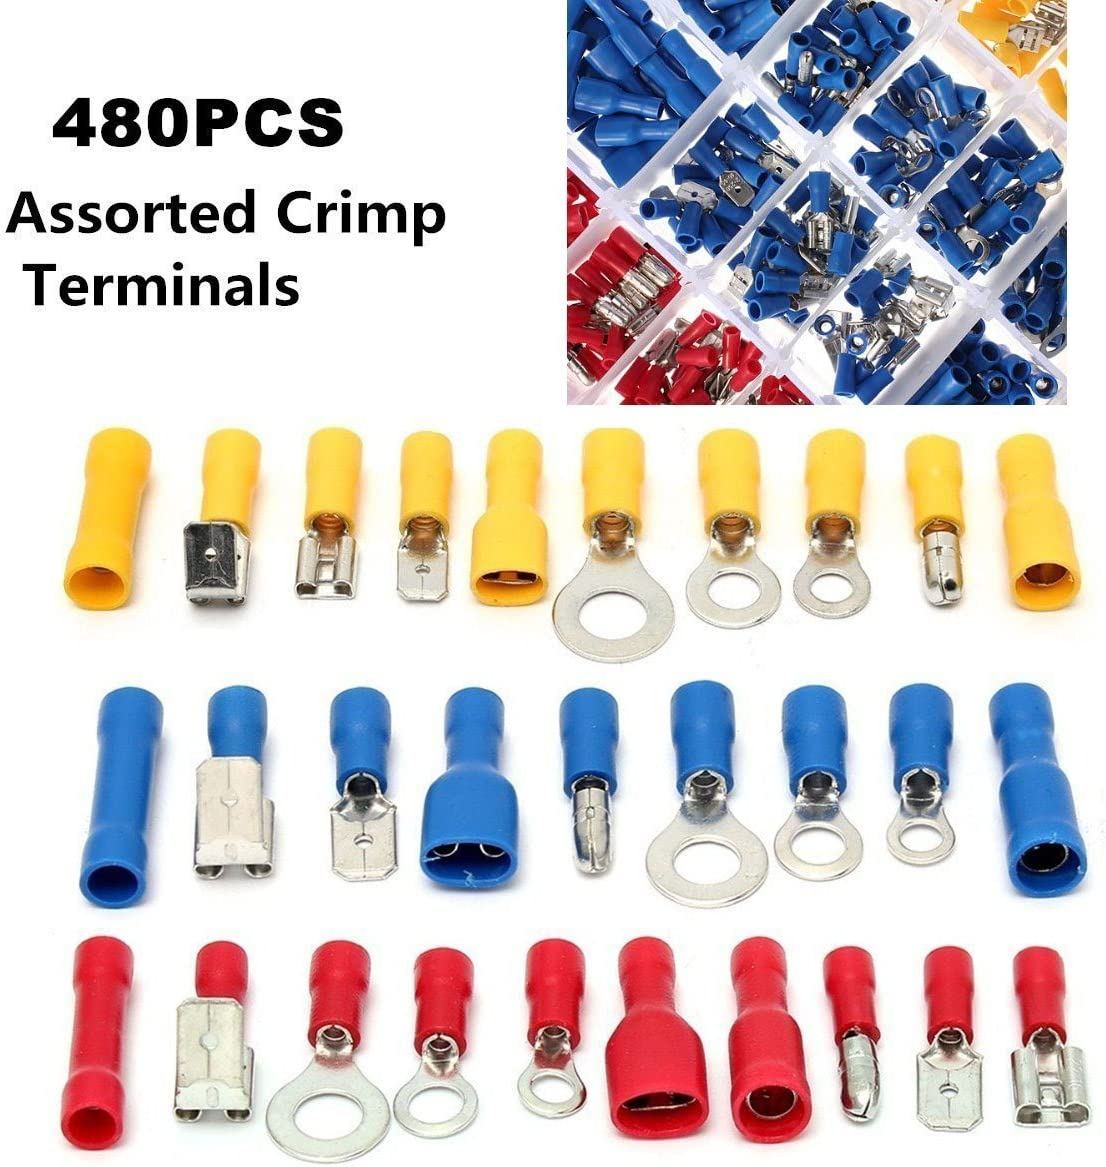 1000 BUTT CONNECTORS VINYL ALL SIZES ASSORTMENT ELECTRICAL TERMINAL MADE IN USA